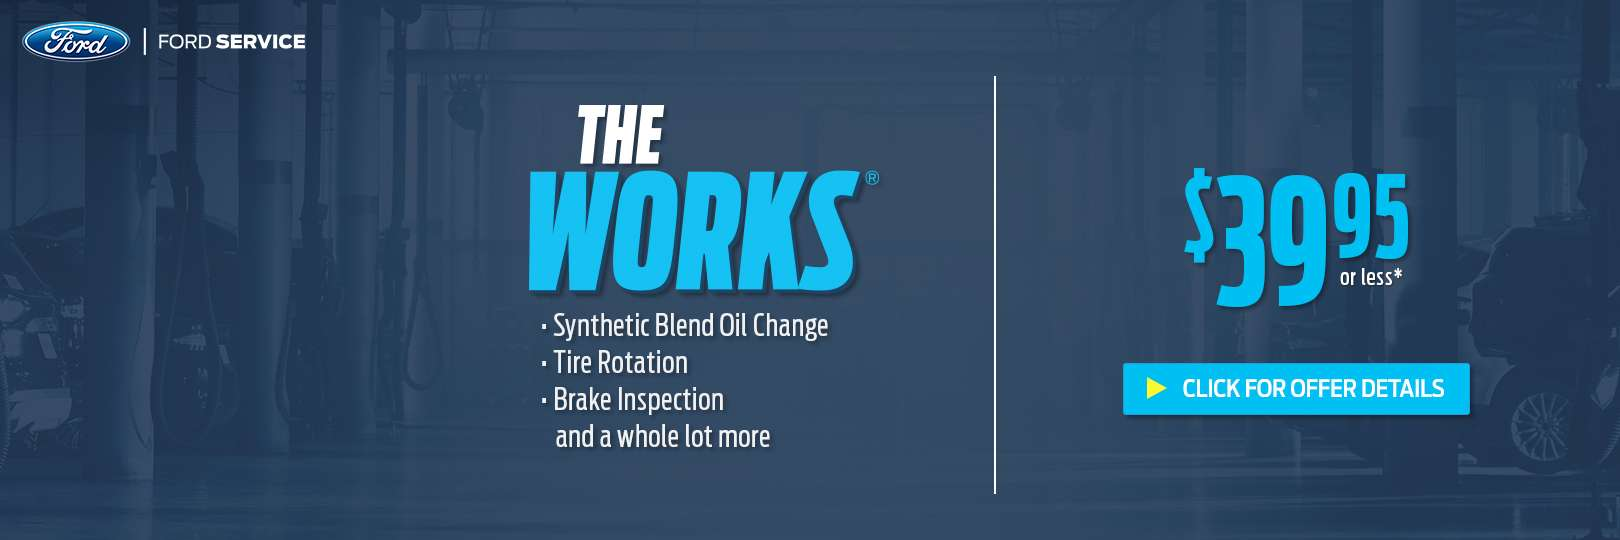 Todays Vehicles Are Some Of The Most Technologically Advanced Machines Ever Produced Even An Oil Change Isnt As Basic As It Used To Be Our Expert Ford